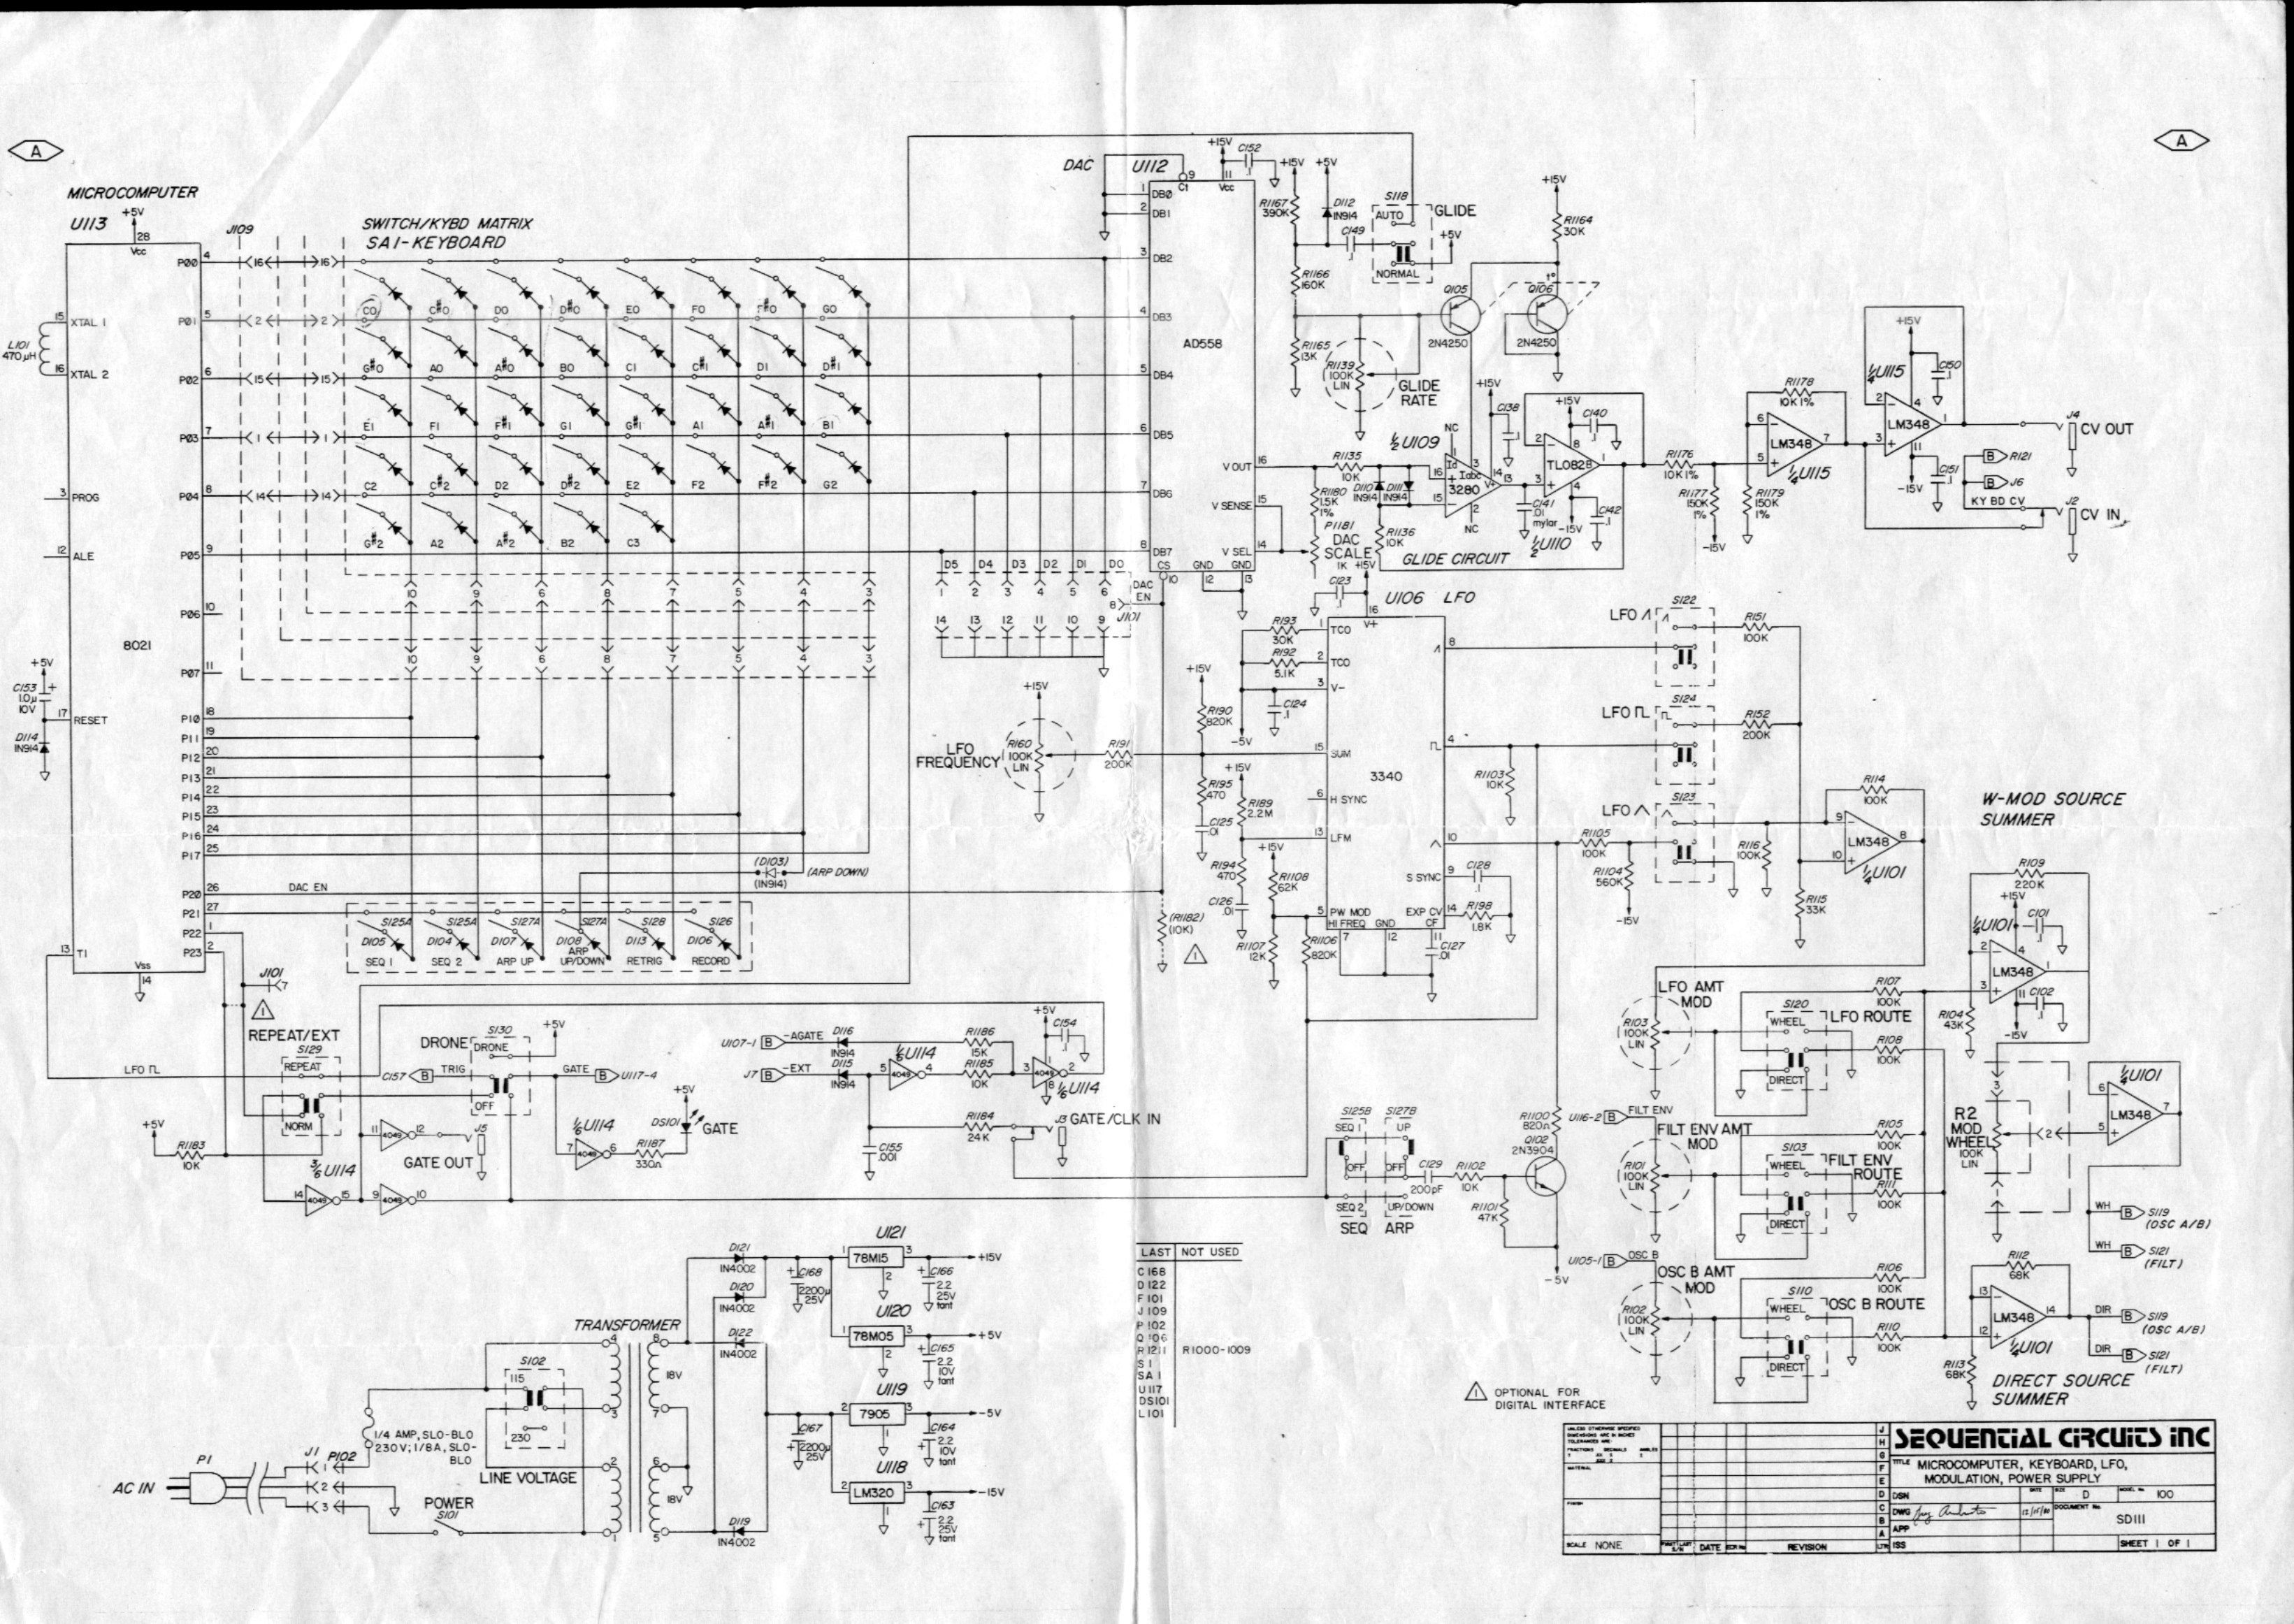 Cr 500 Wiring Diagram Library Simmons Well Pump Circuits Pro One Schematic 1 Of 2jpeg